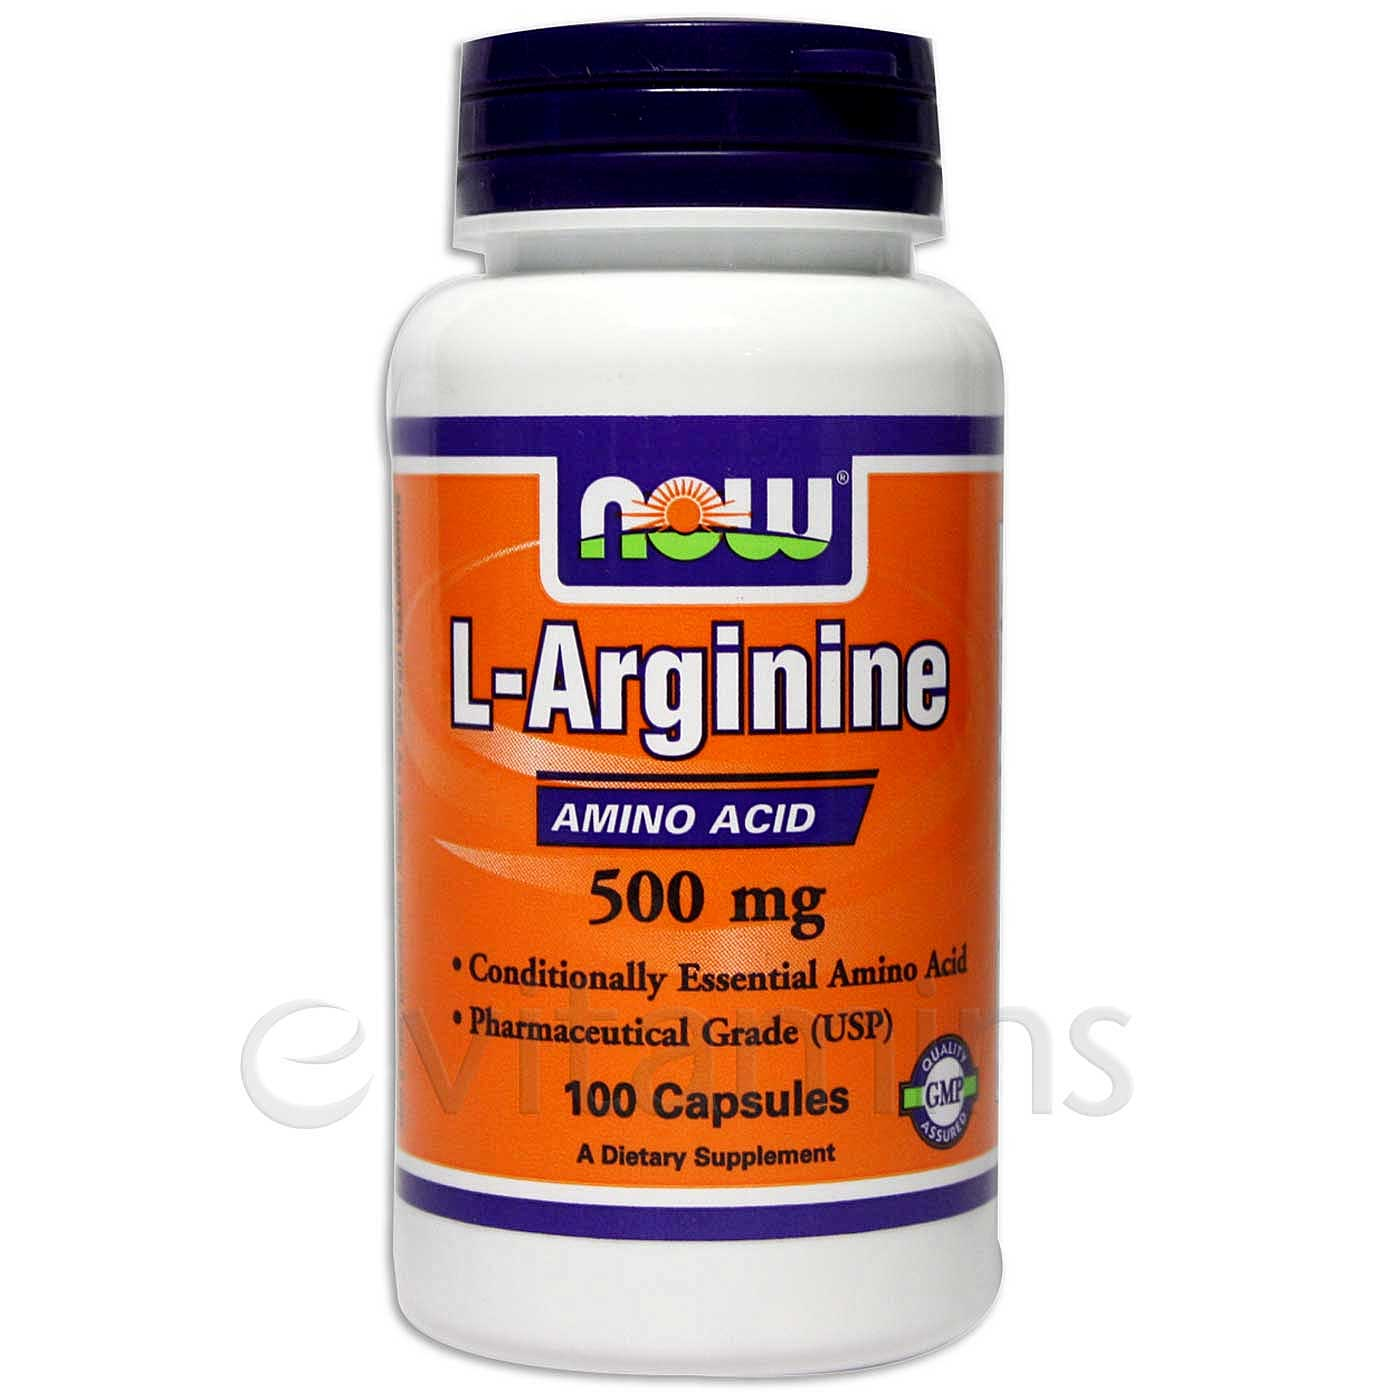 What is l arginine good for